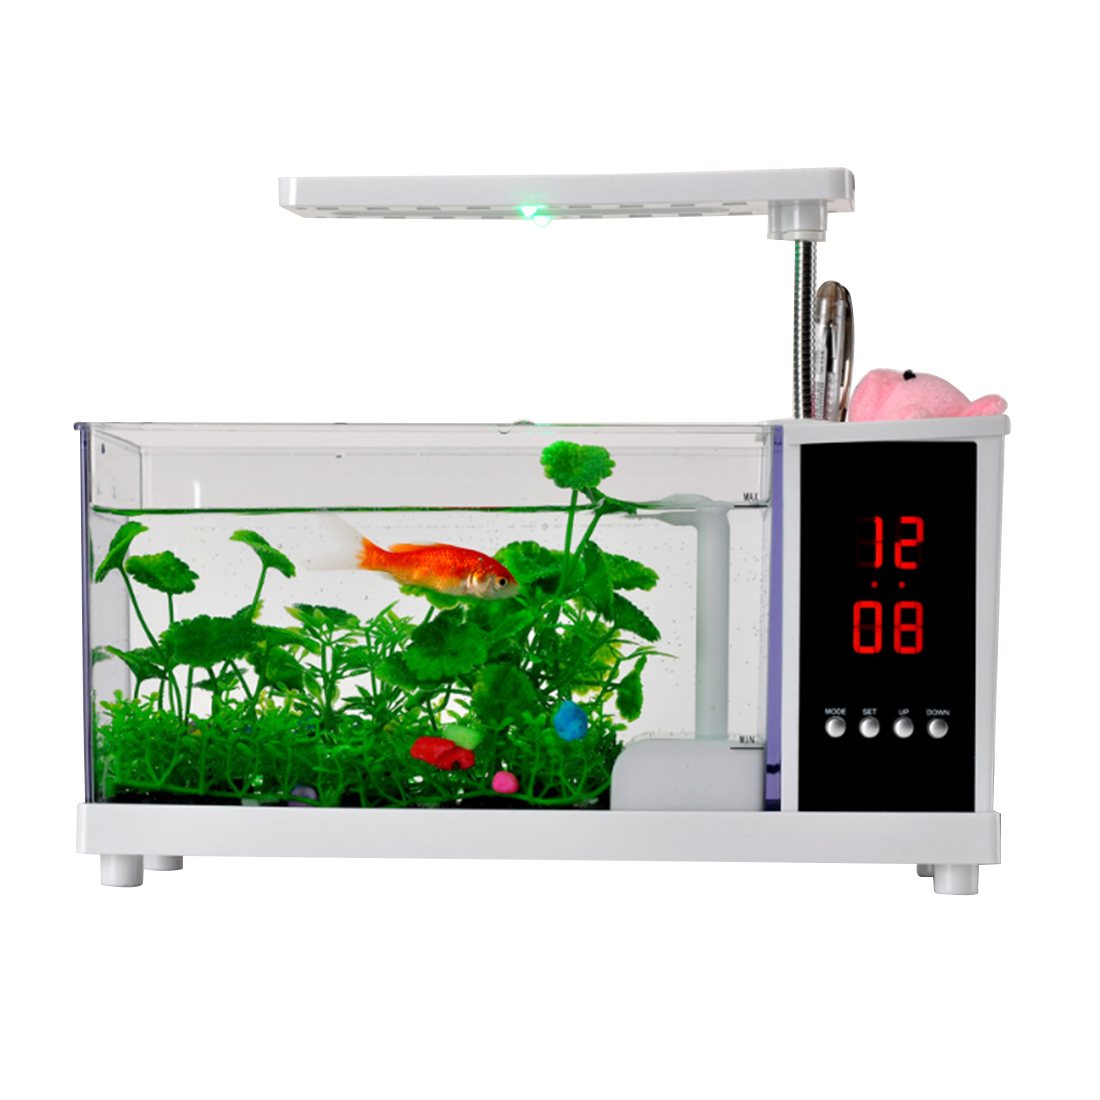 Multifunction USB Powered Mini Fish Tank Creative Aquarium with Alarm Clock FunctionMultifunction USB Powered Mini Fish Tank Creative Aquarium with Alarm Clock Function